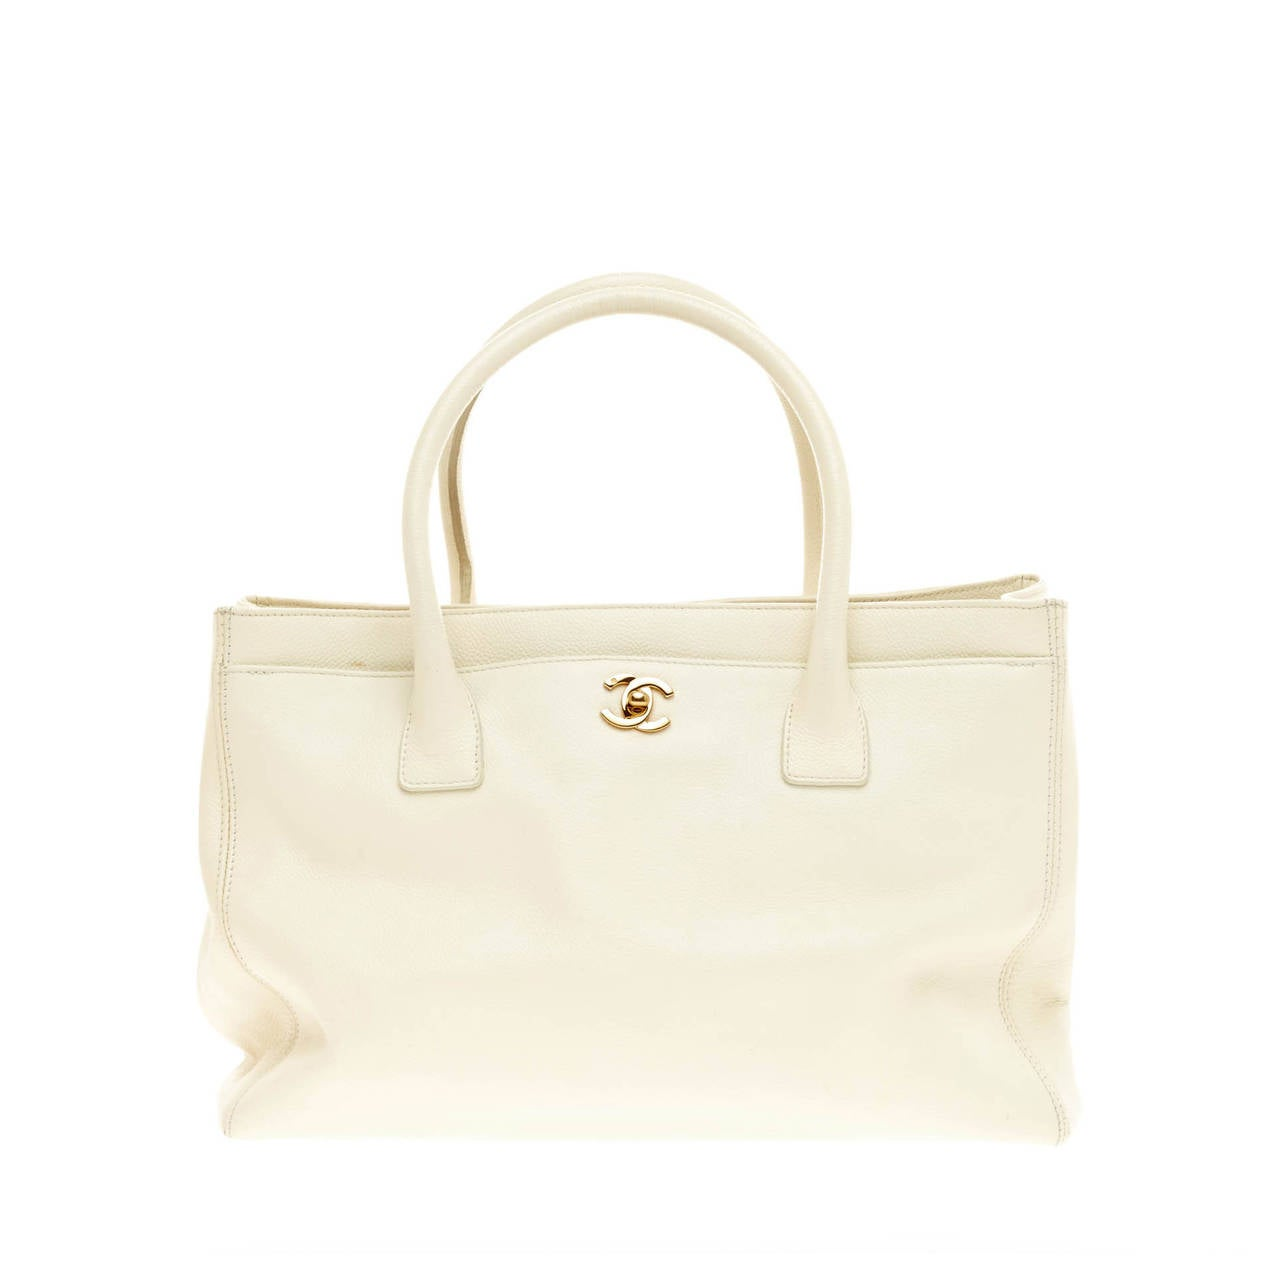 Chanel Cerf Executive Tote Leather Medium 1